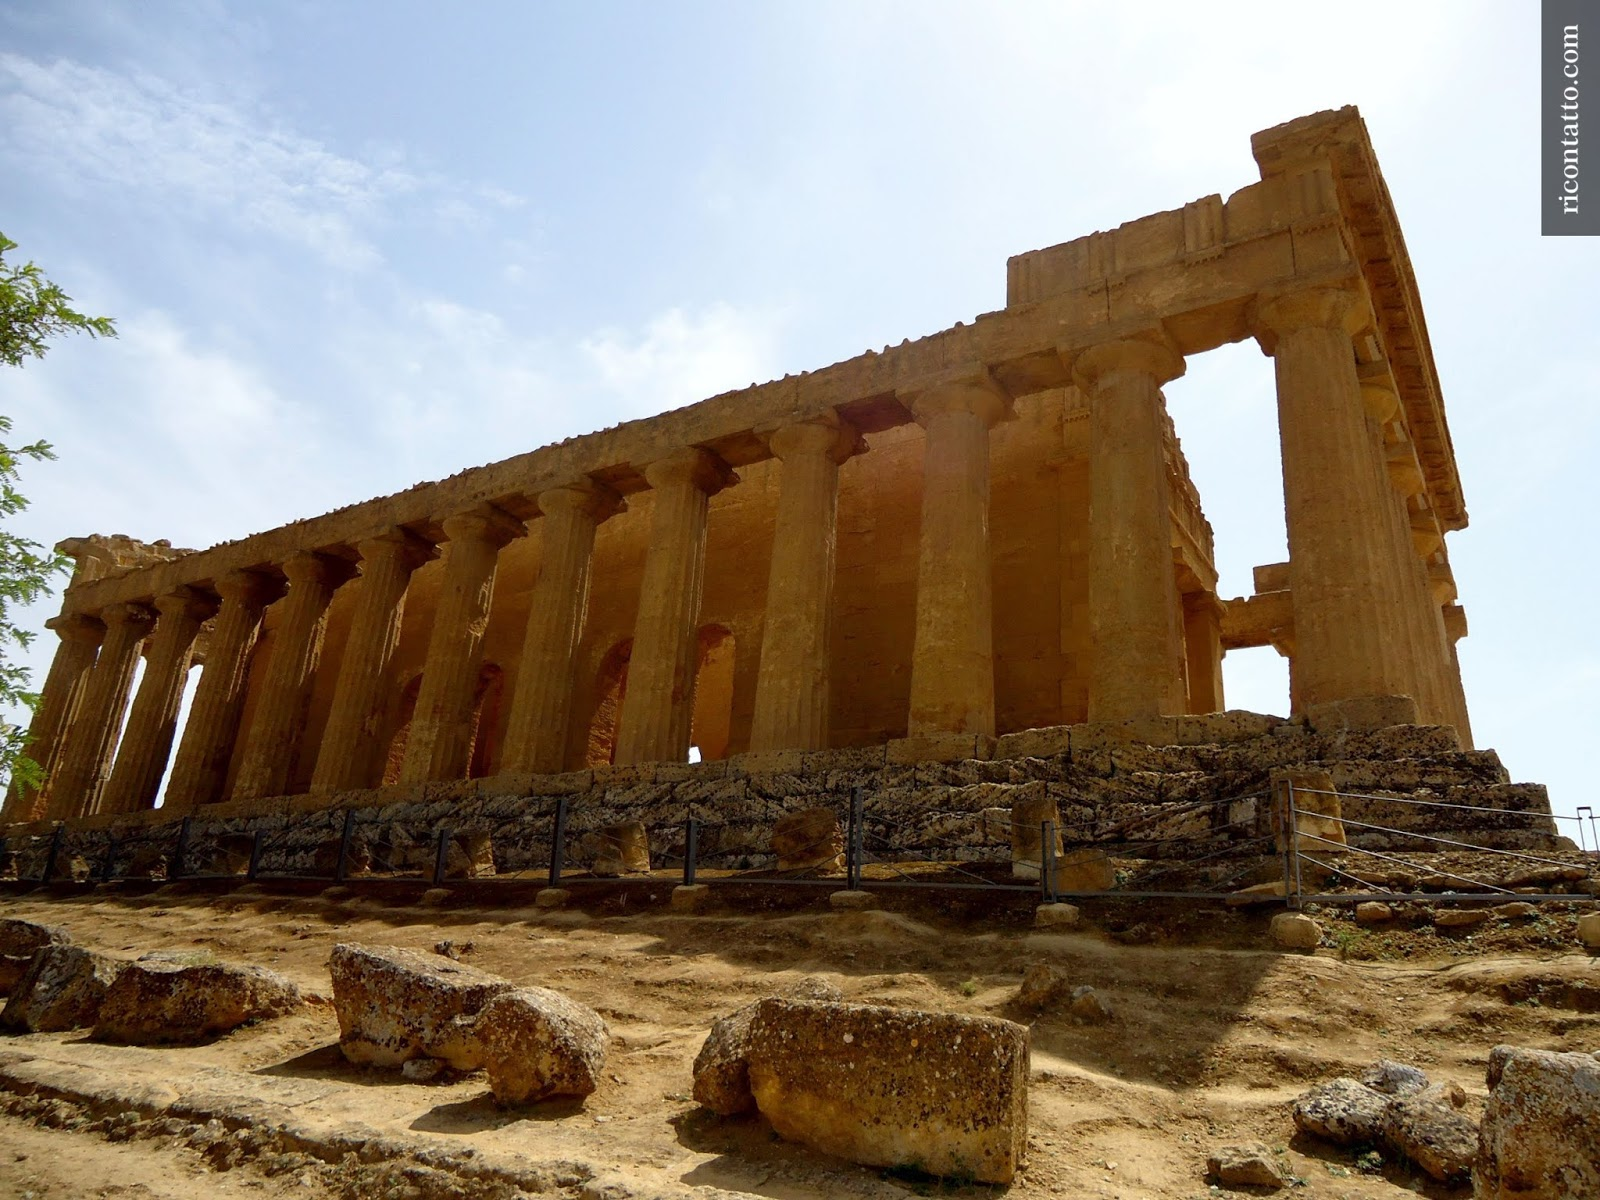 Agrigento, Sicilia, Italy - Photo #03 by Ricontatto.com